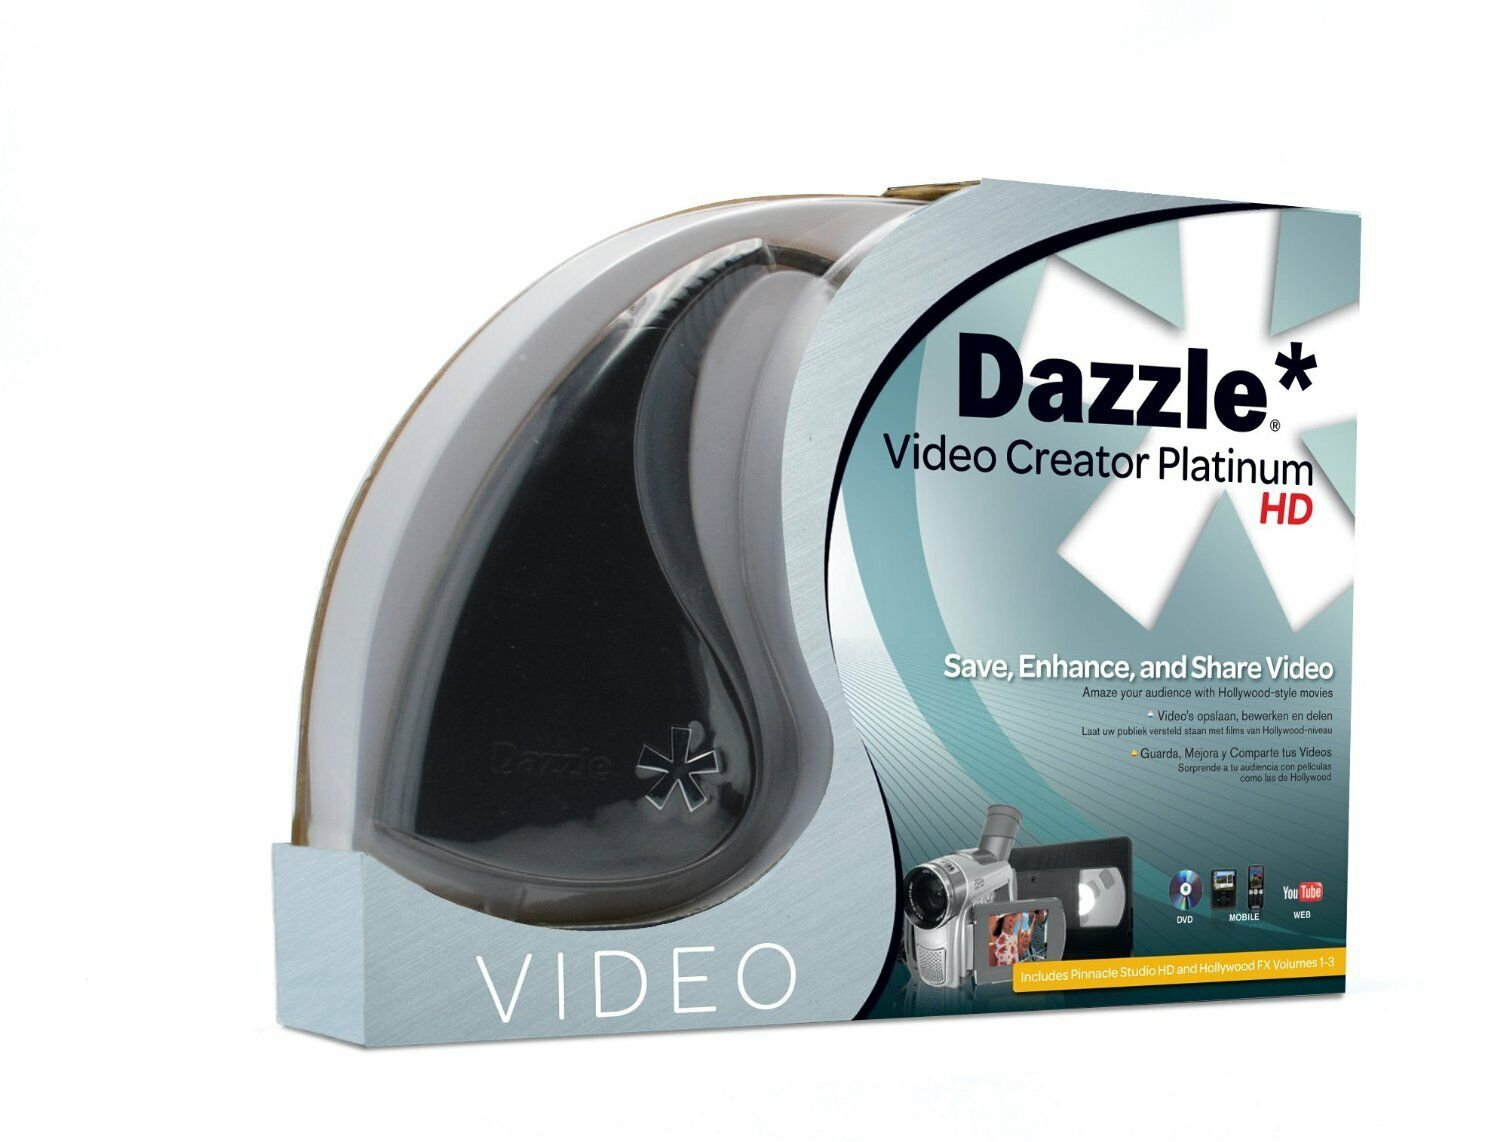 Dazzle DVD Recorder HD by Pinnacle